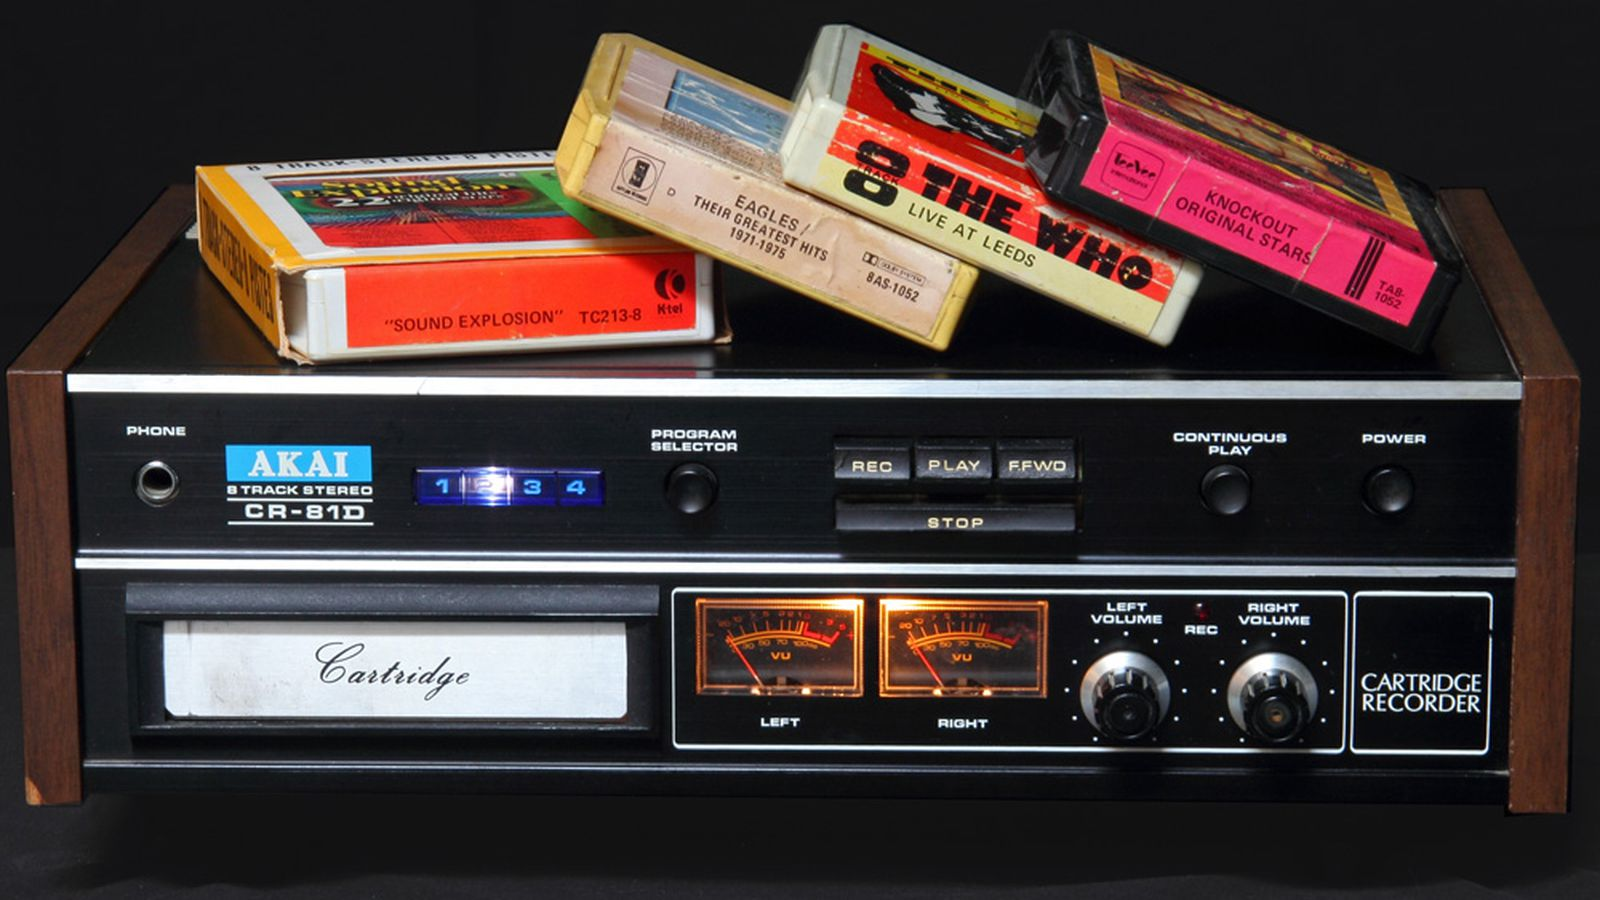 8 track tapes images